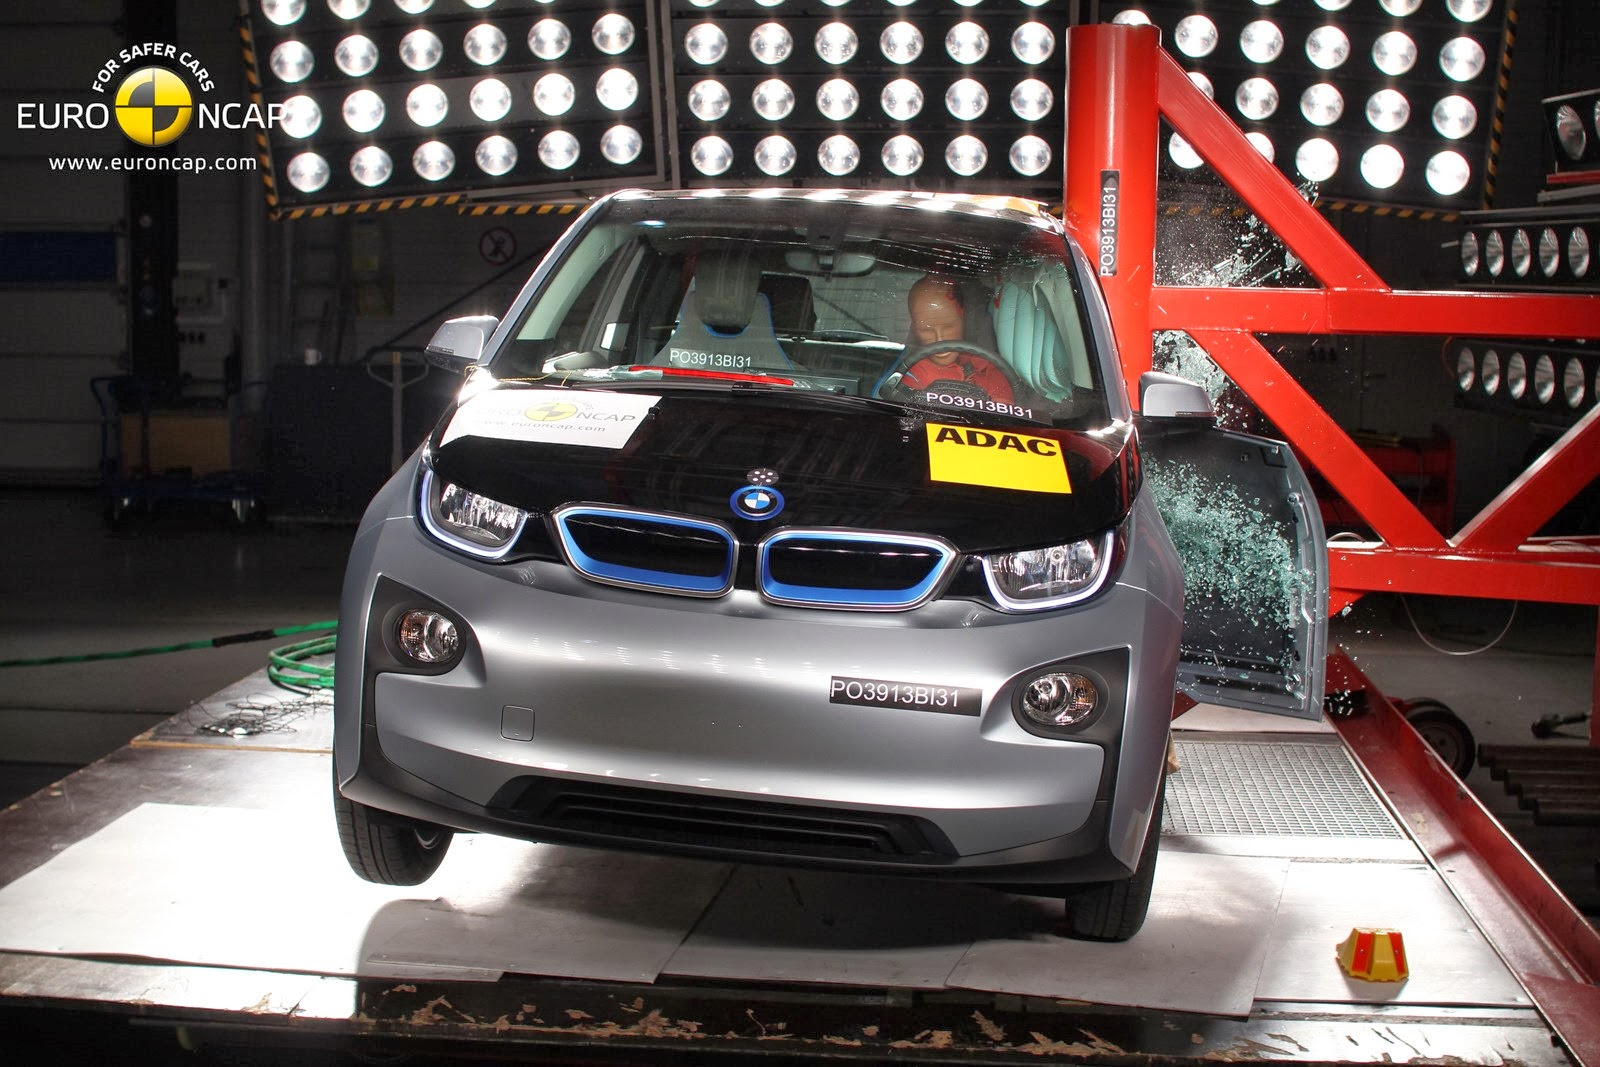 The Electric BMW i3: BMW i3 Earns 4 Out of 5 Rating in Euro NCAP